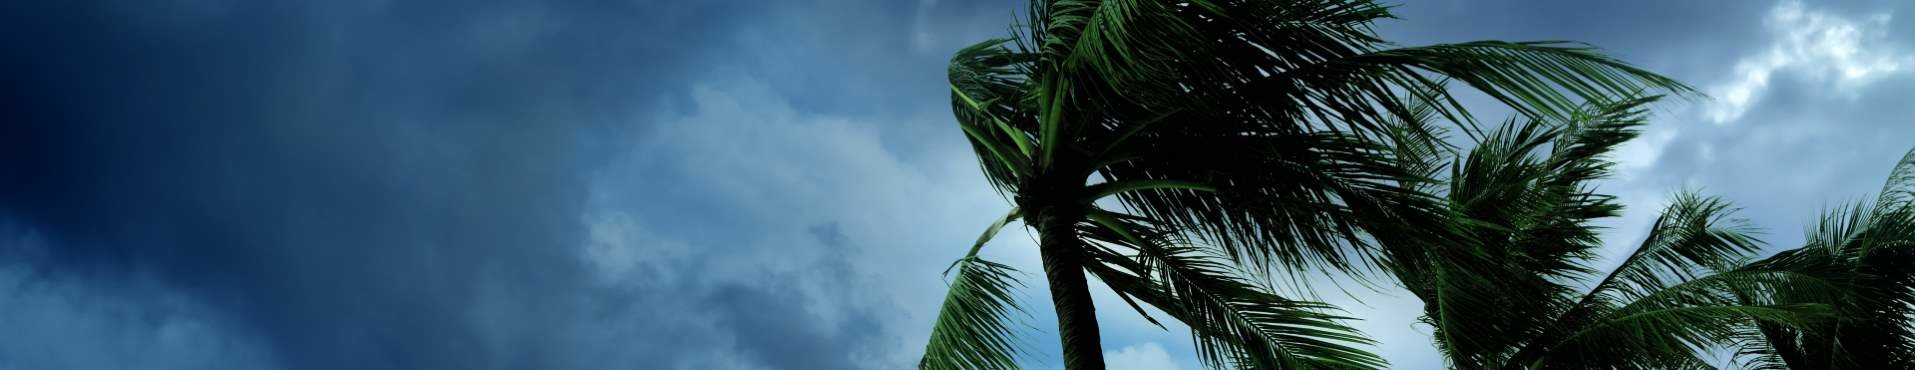 Palm trees blowing in a storm | Shine Lawyers